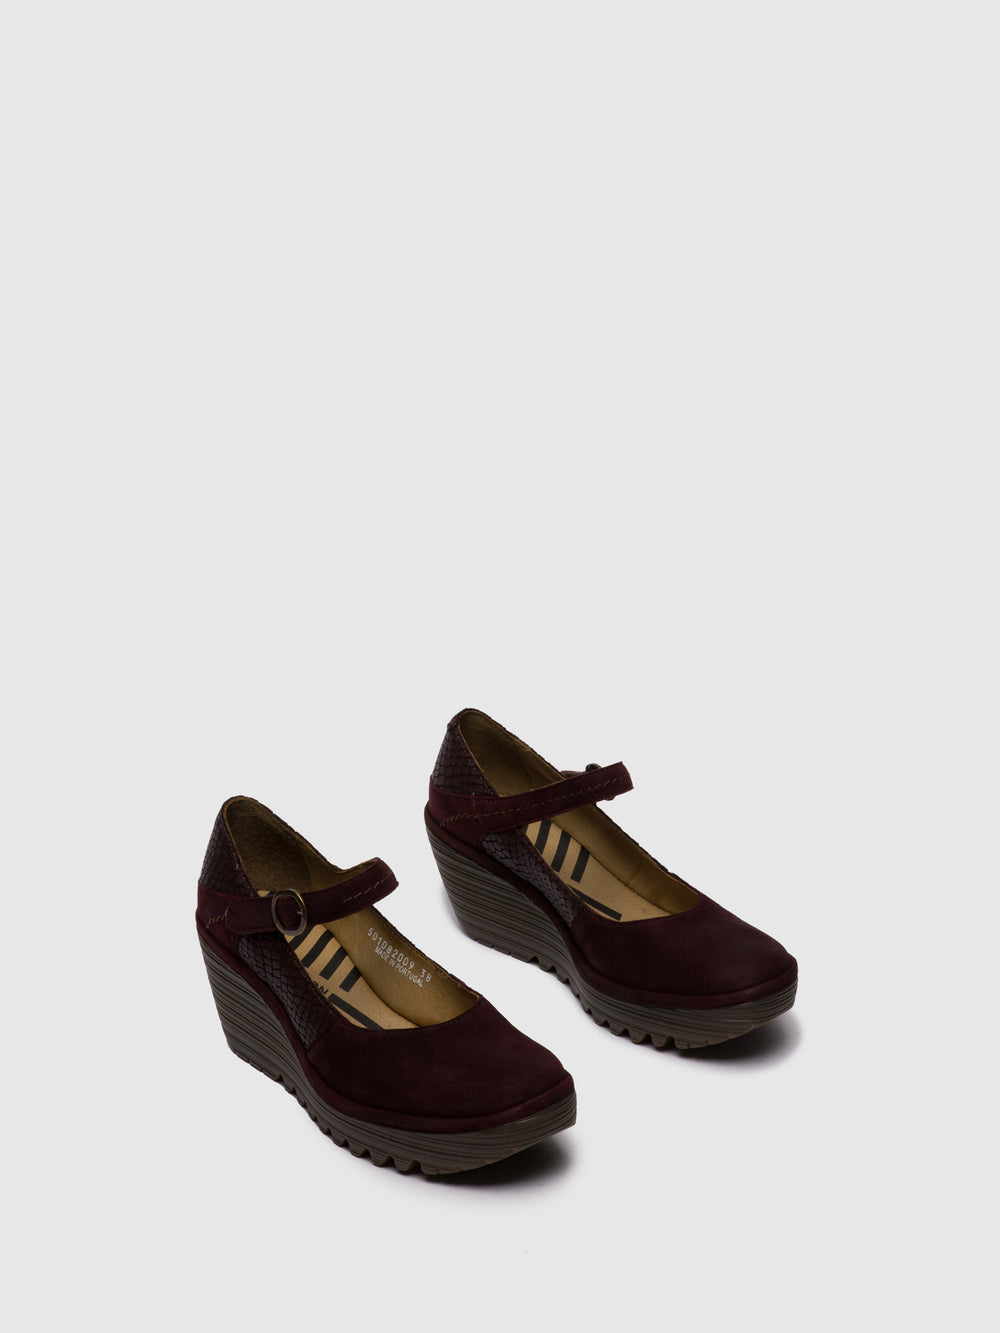 Mary Jane Shoes YUKO082FLY SILKY/CROCO WINE